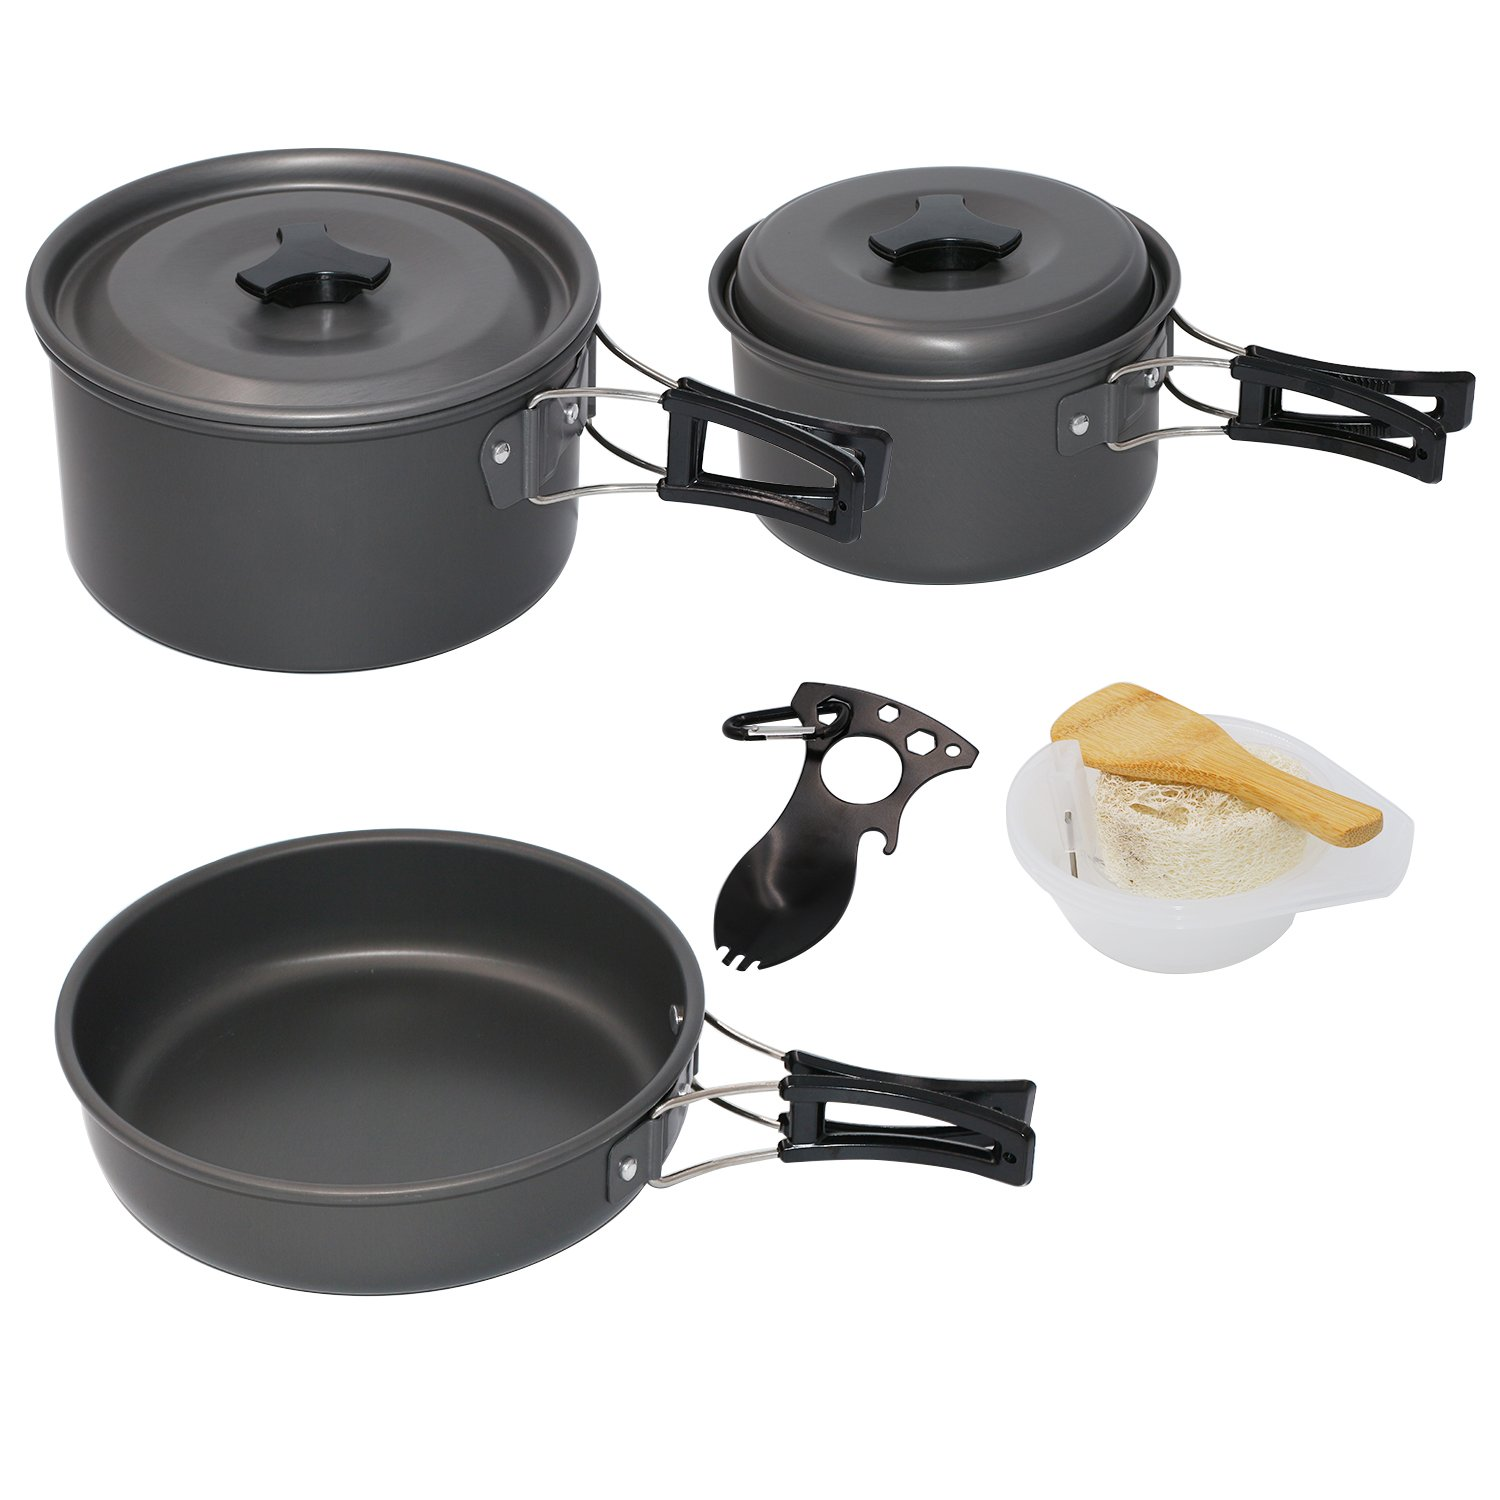 4. Startostar Camping Cookware, Compact, Durable Outdoor Backpacking Pots, and Pans Set with Spork